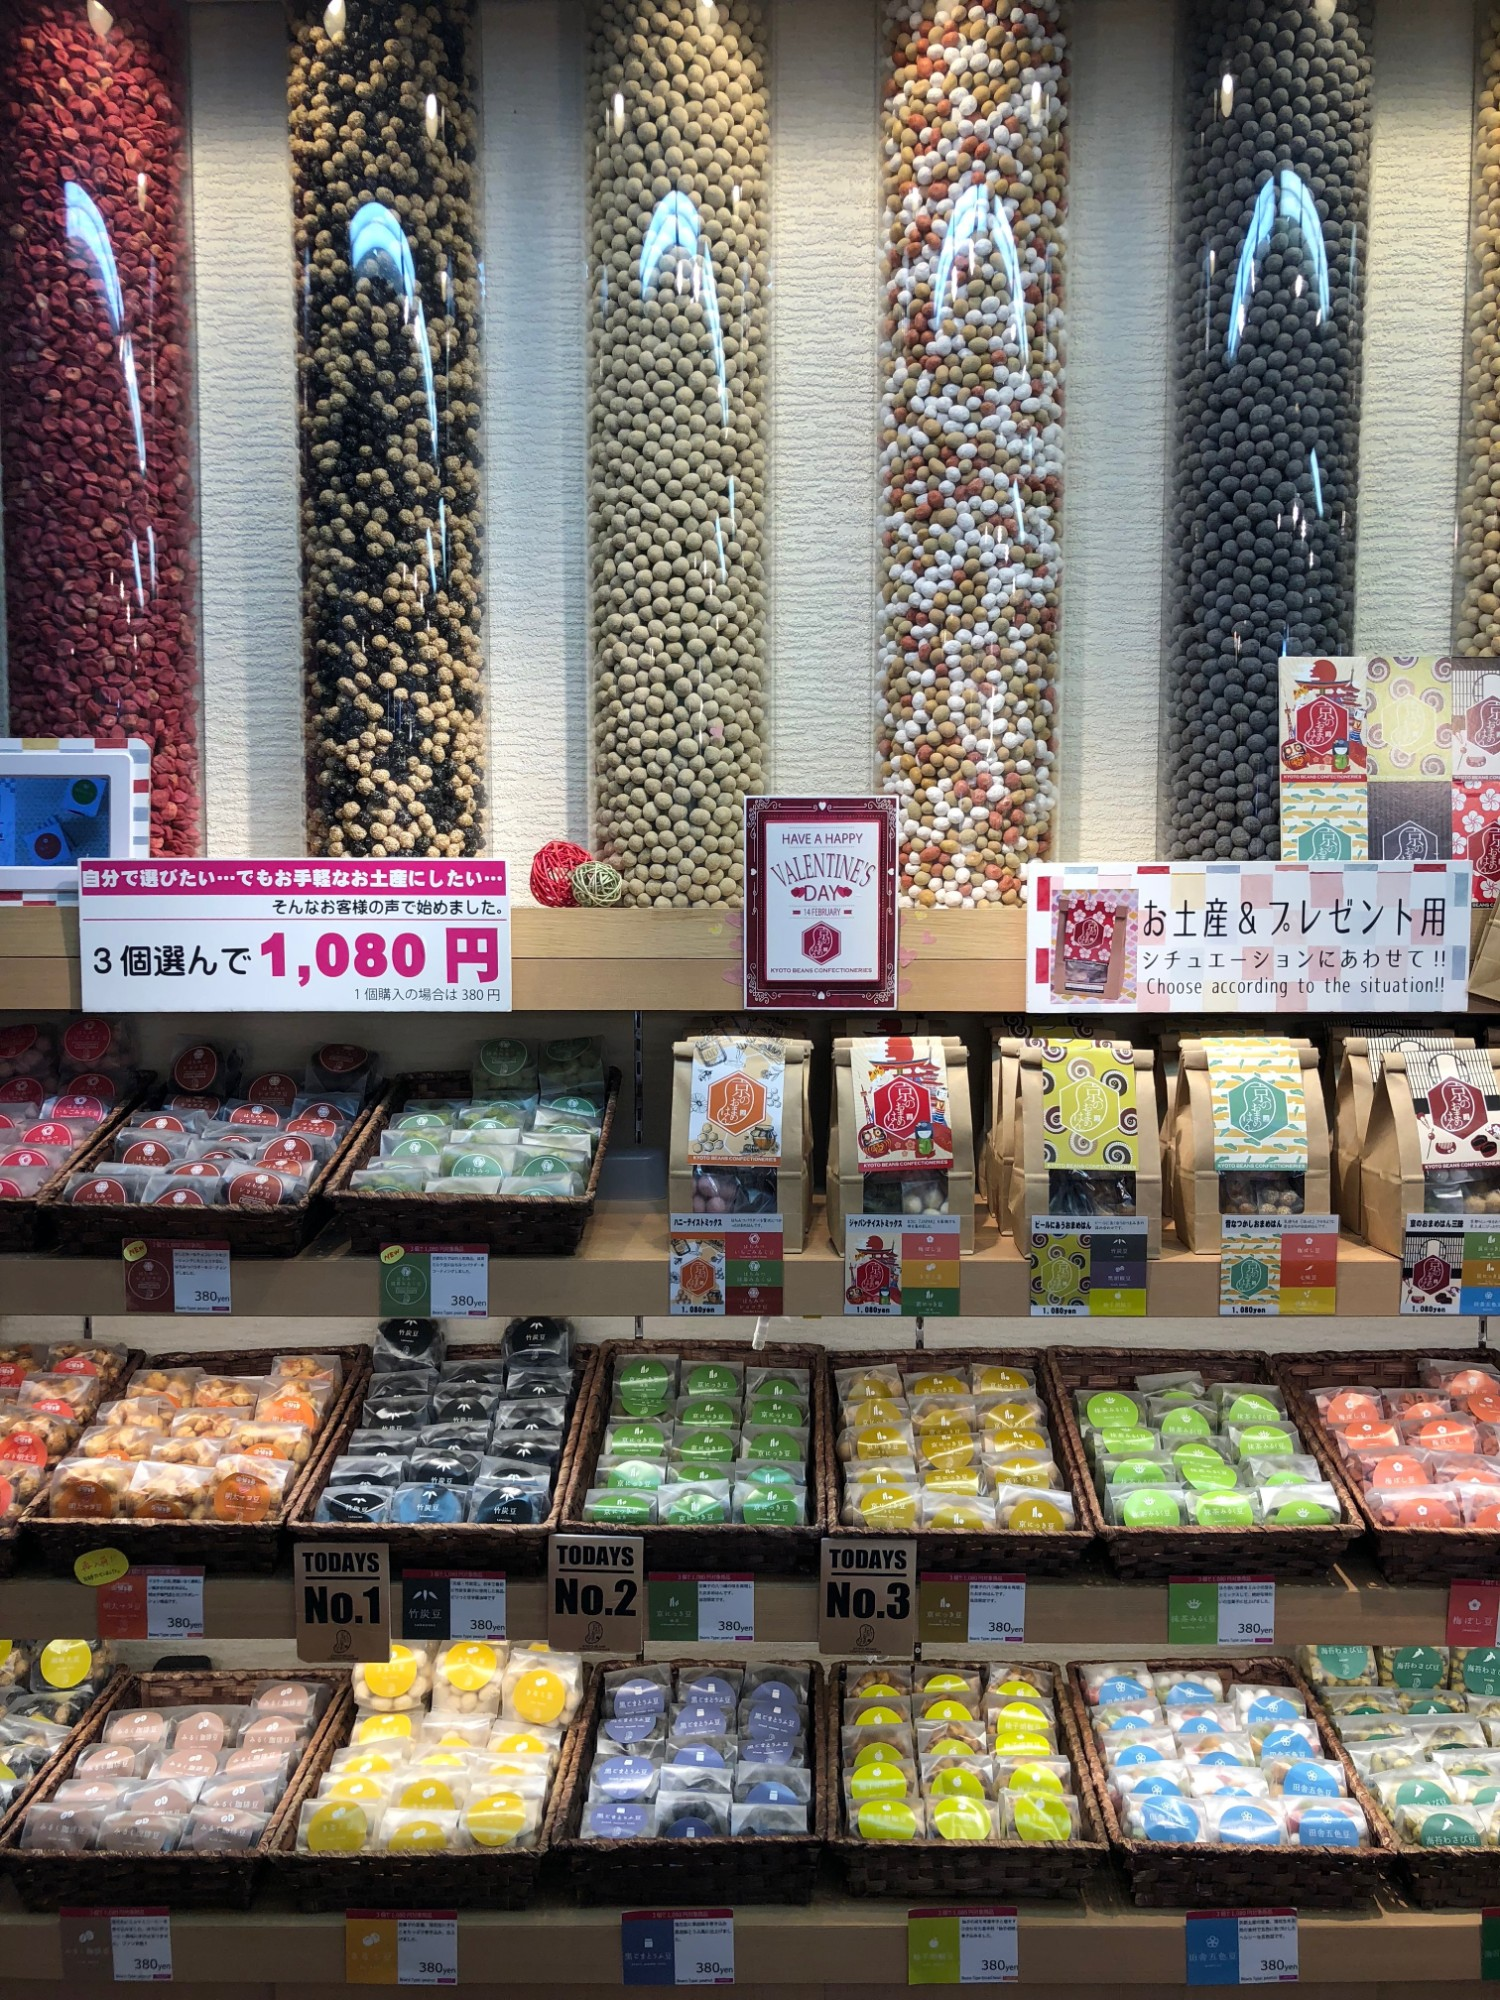 Dozens of varieties of flavored peanuts are beautifully displayed at shop in Nishiki market in Kyoto, Japan. boldlygotravel.com